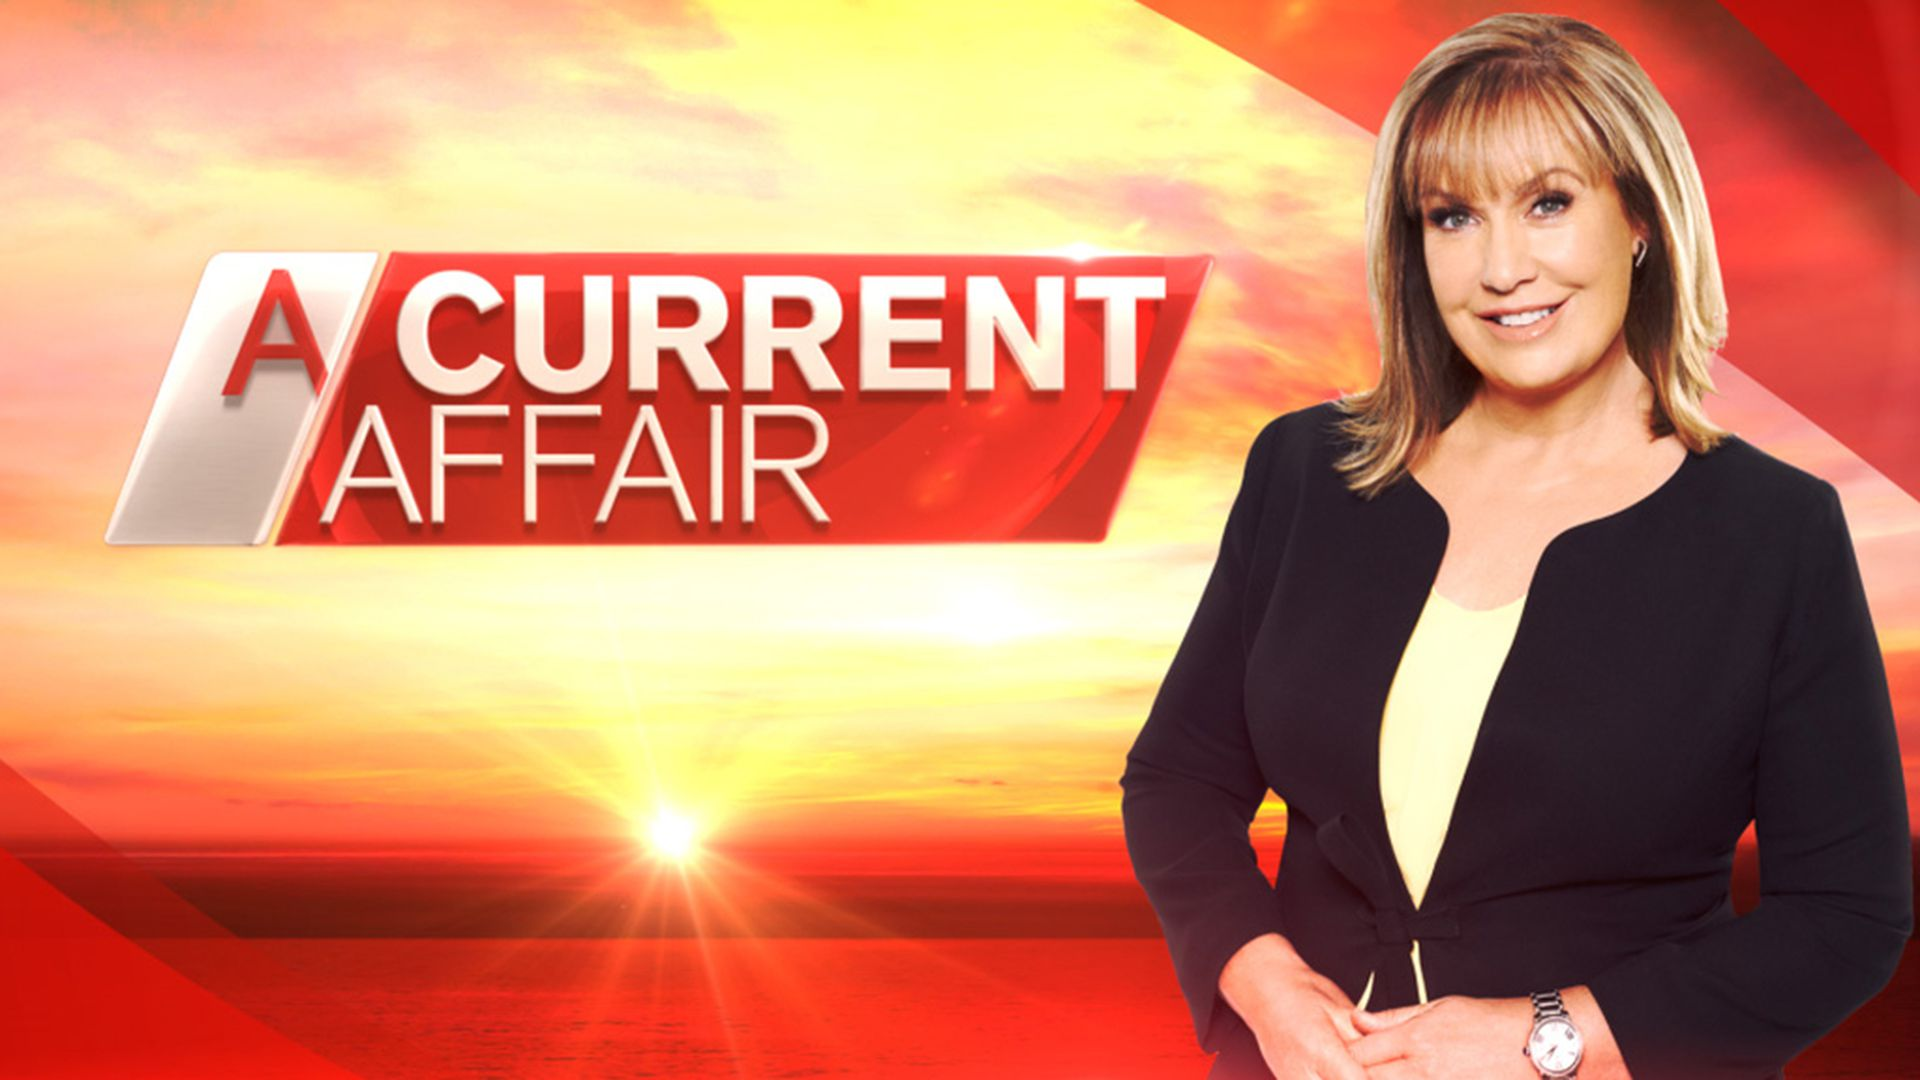 Home A Current Affair Extras 2018 Exclusive Content